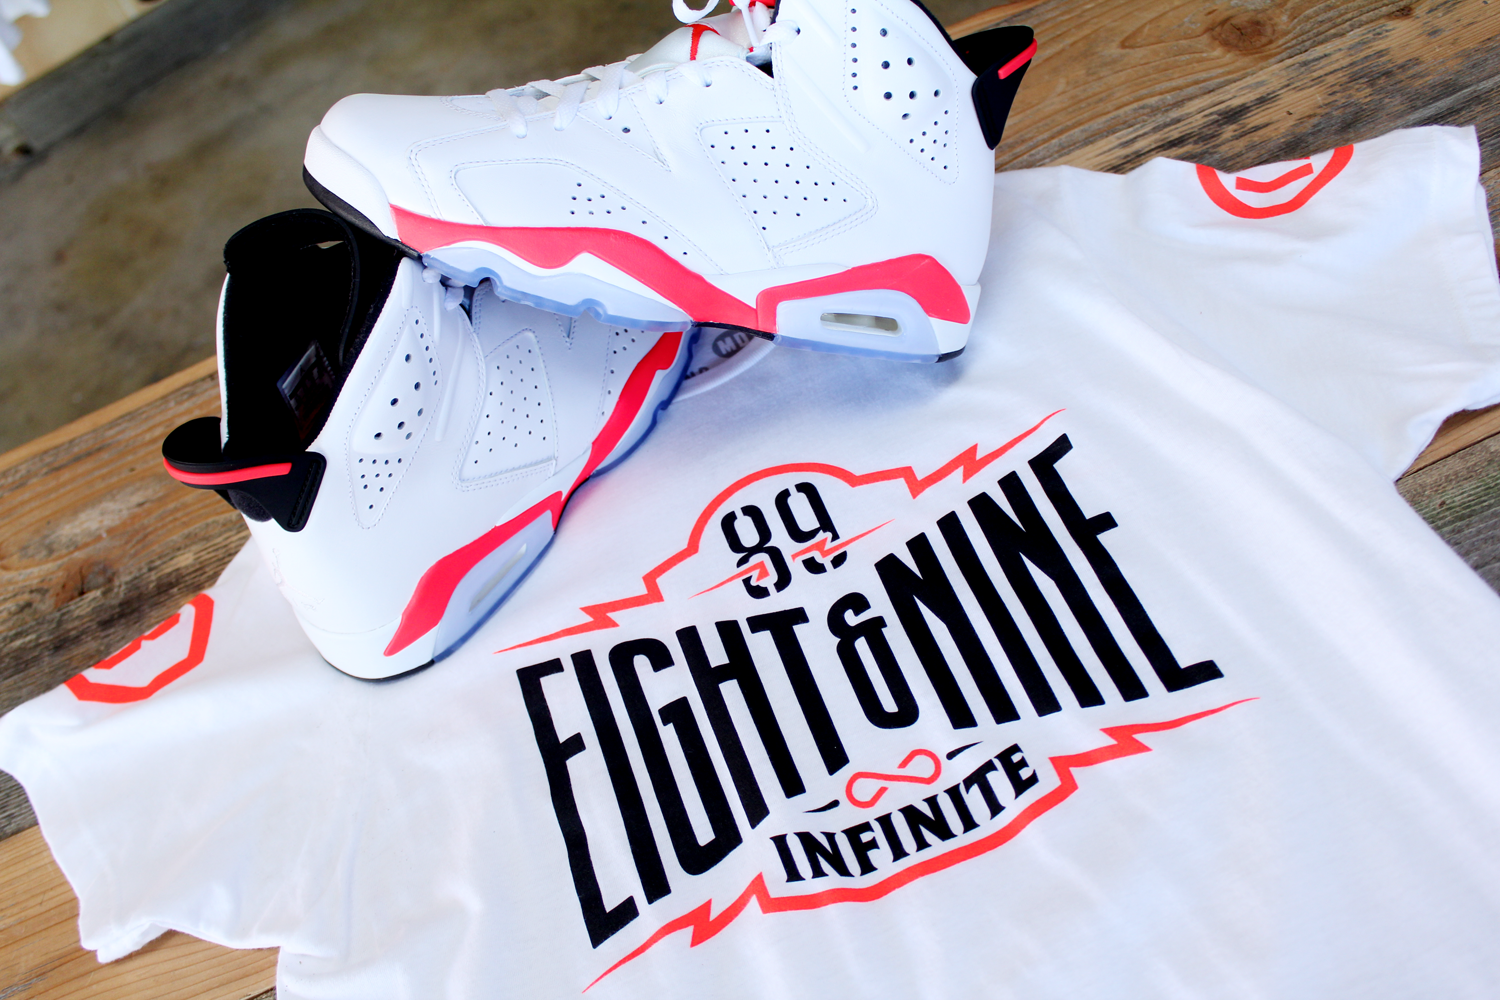 7adea0a948b85d Shirts to match Jordan 6 Infrared 2019 Release